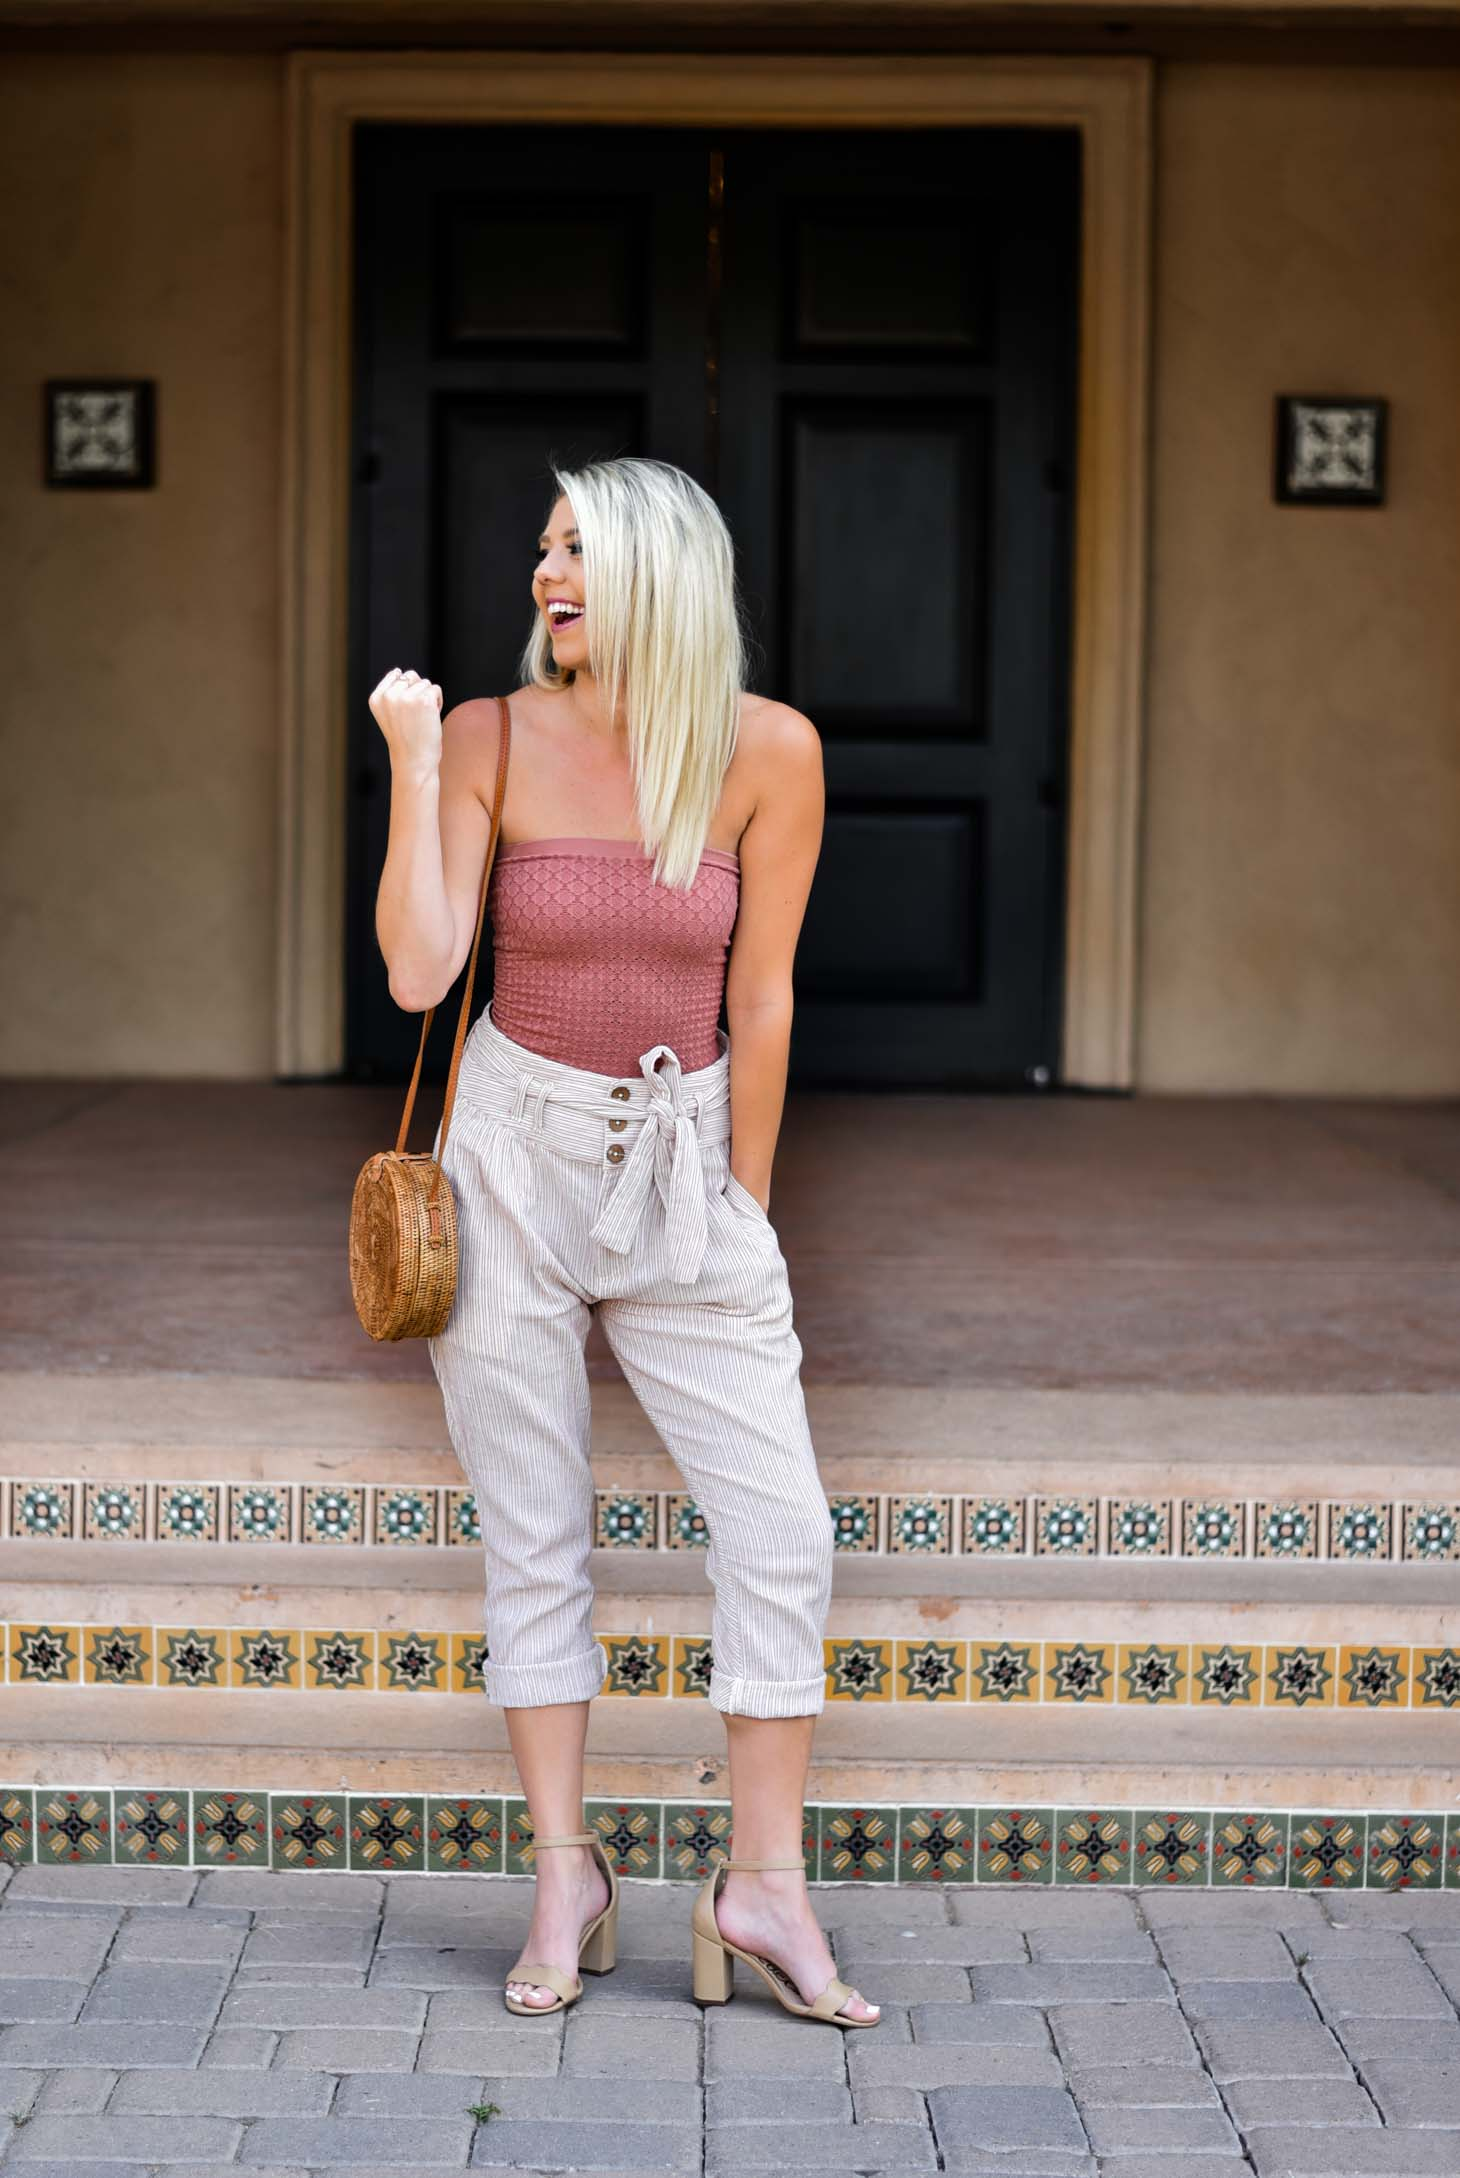 Erin Elizabeth of Wink and a Twirl shares this Free People Style and Outfit Featuring Linen Pants and Top